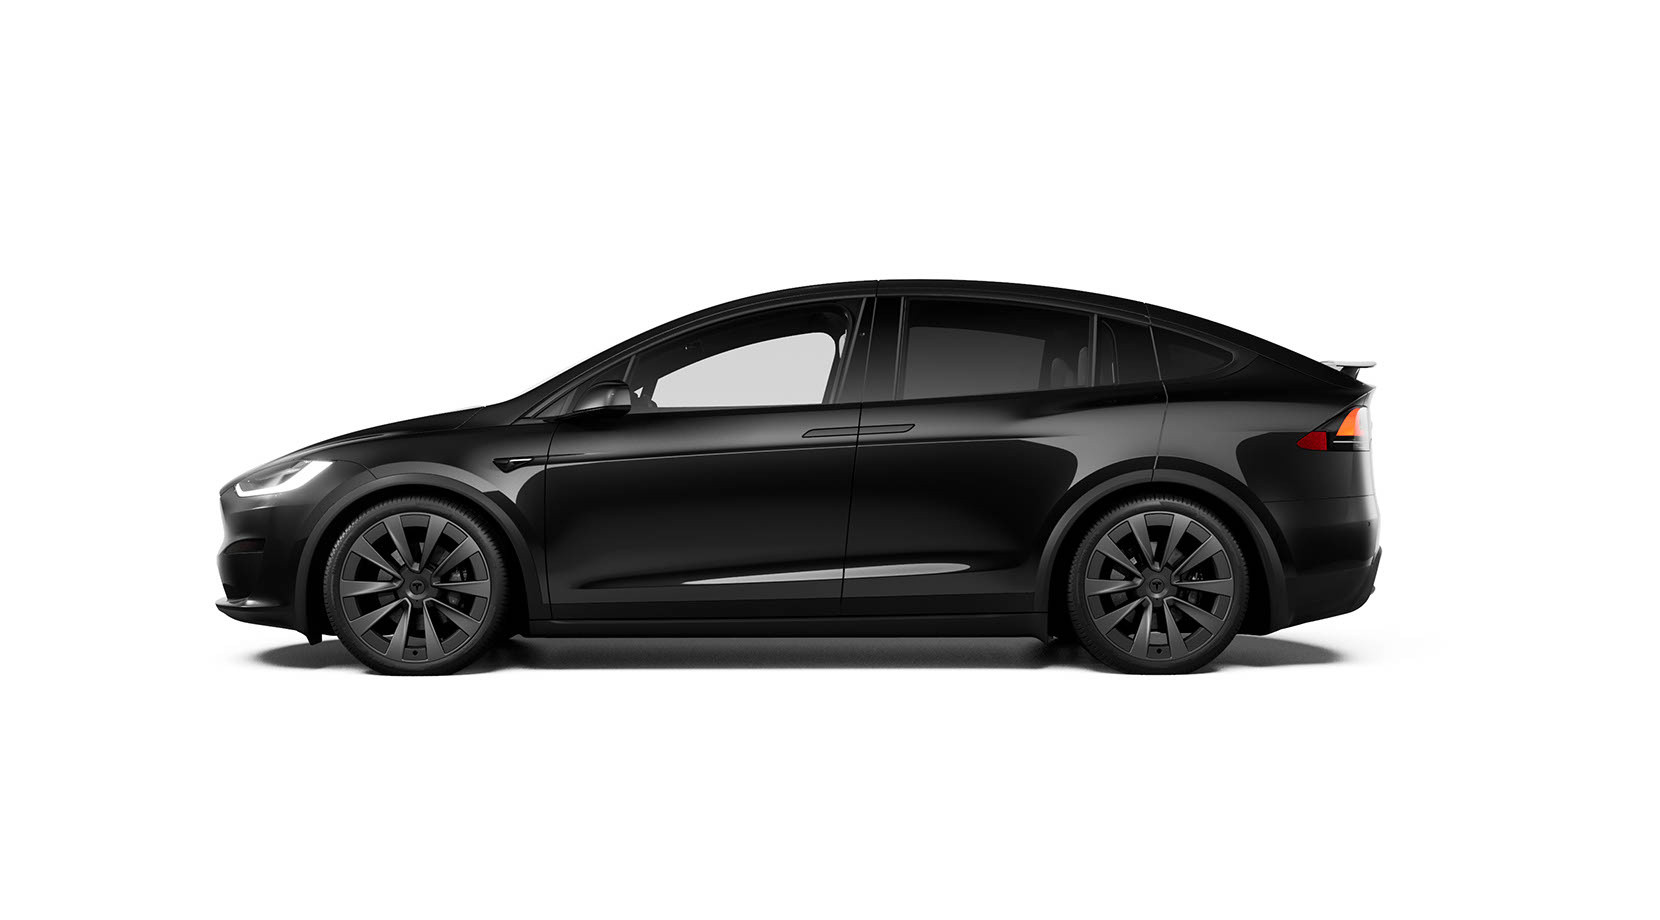 Side view of black Model X